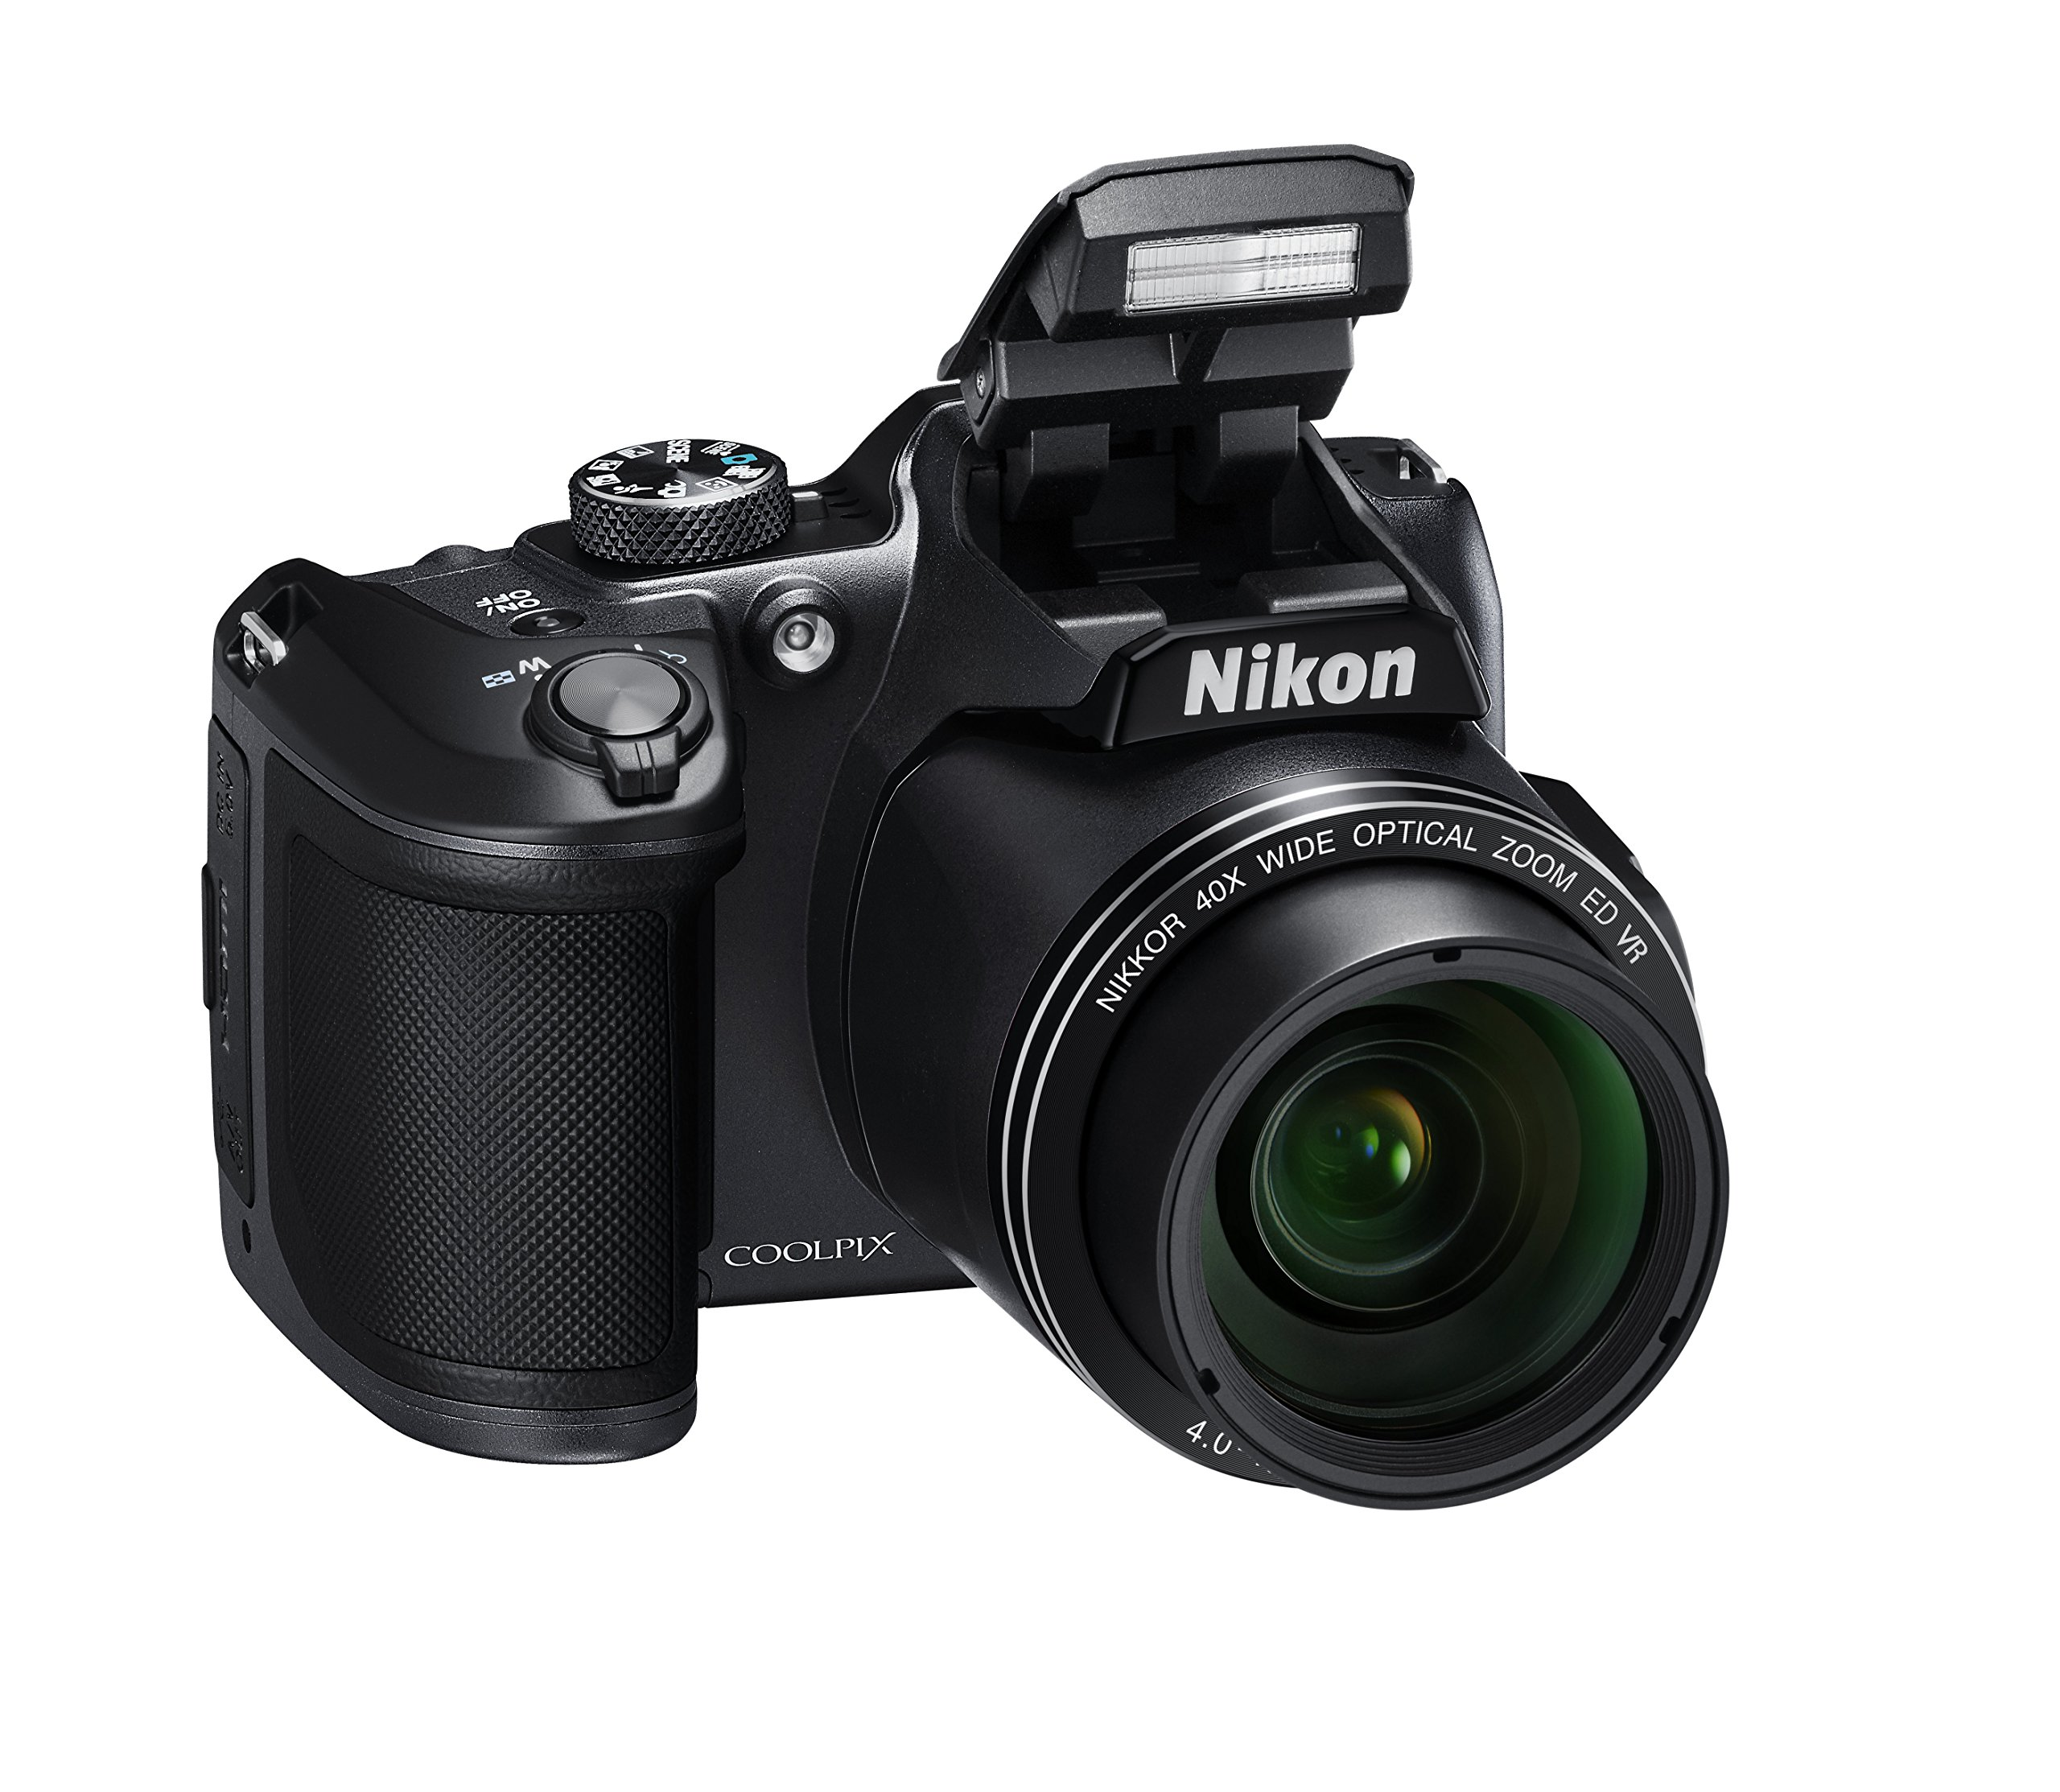 "Nikon Coolpix B500 Fotocamera Digitale Compatta, 16 Megapixel, Zoom 40x, VR, LCD Inclinabile 3"", Full HD, Bluetooth, Wi-Fi, Nero [Nital Card: 4 Anni di Garanzia] product image"